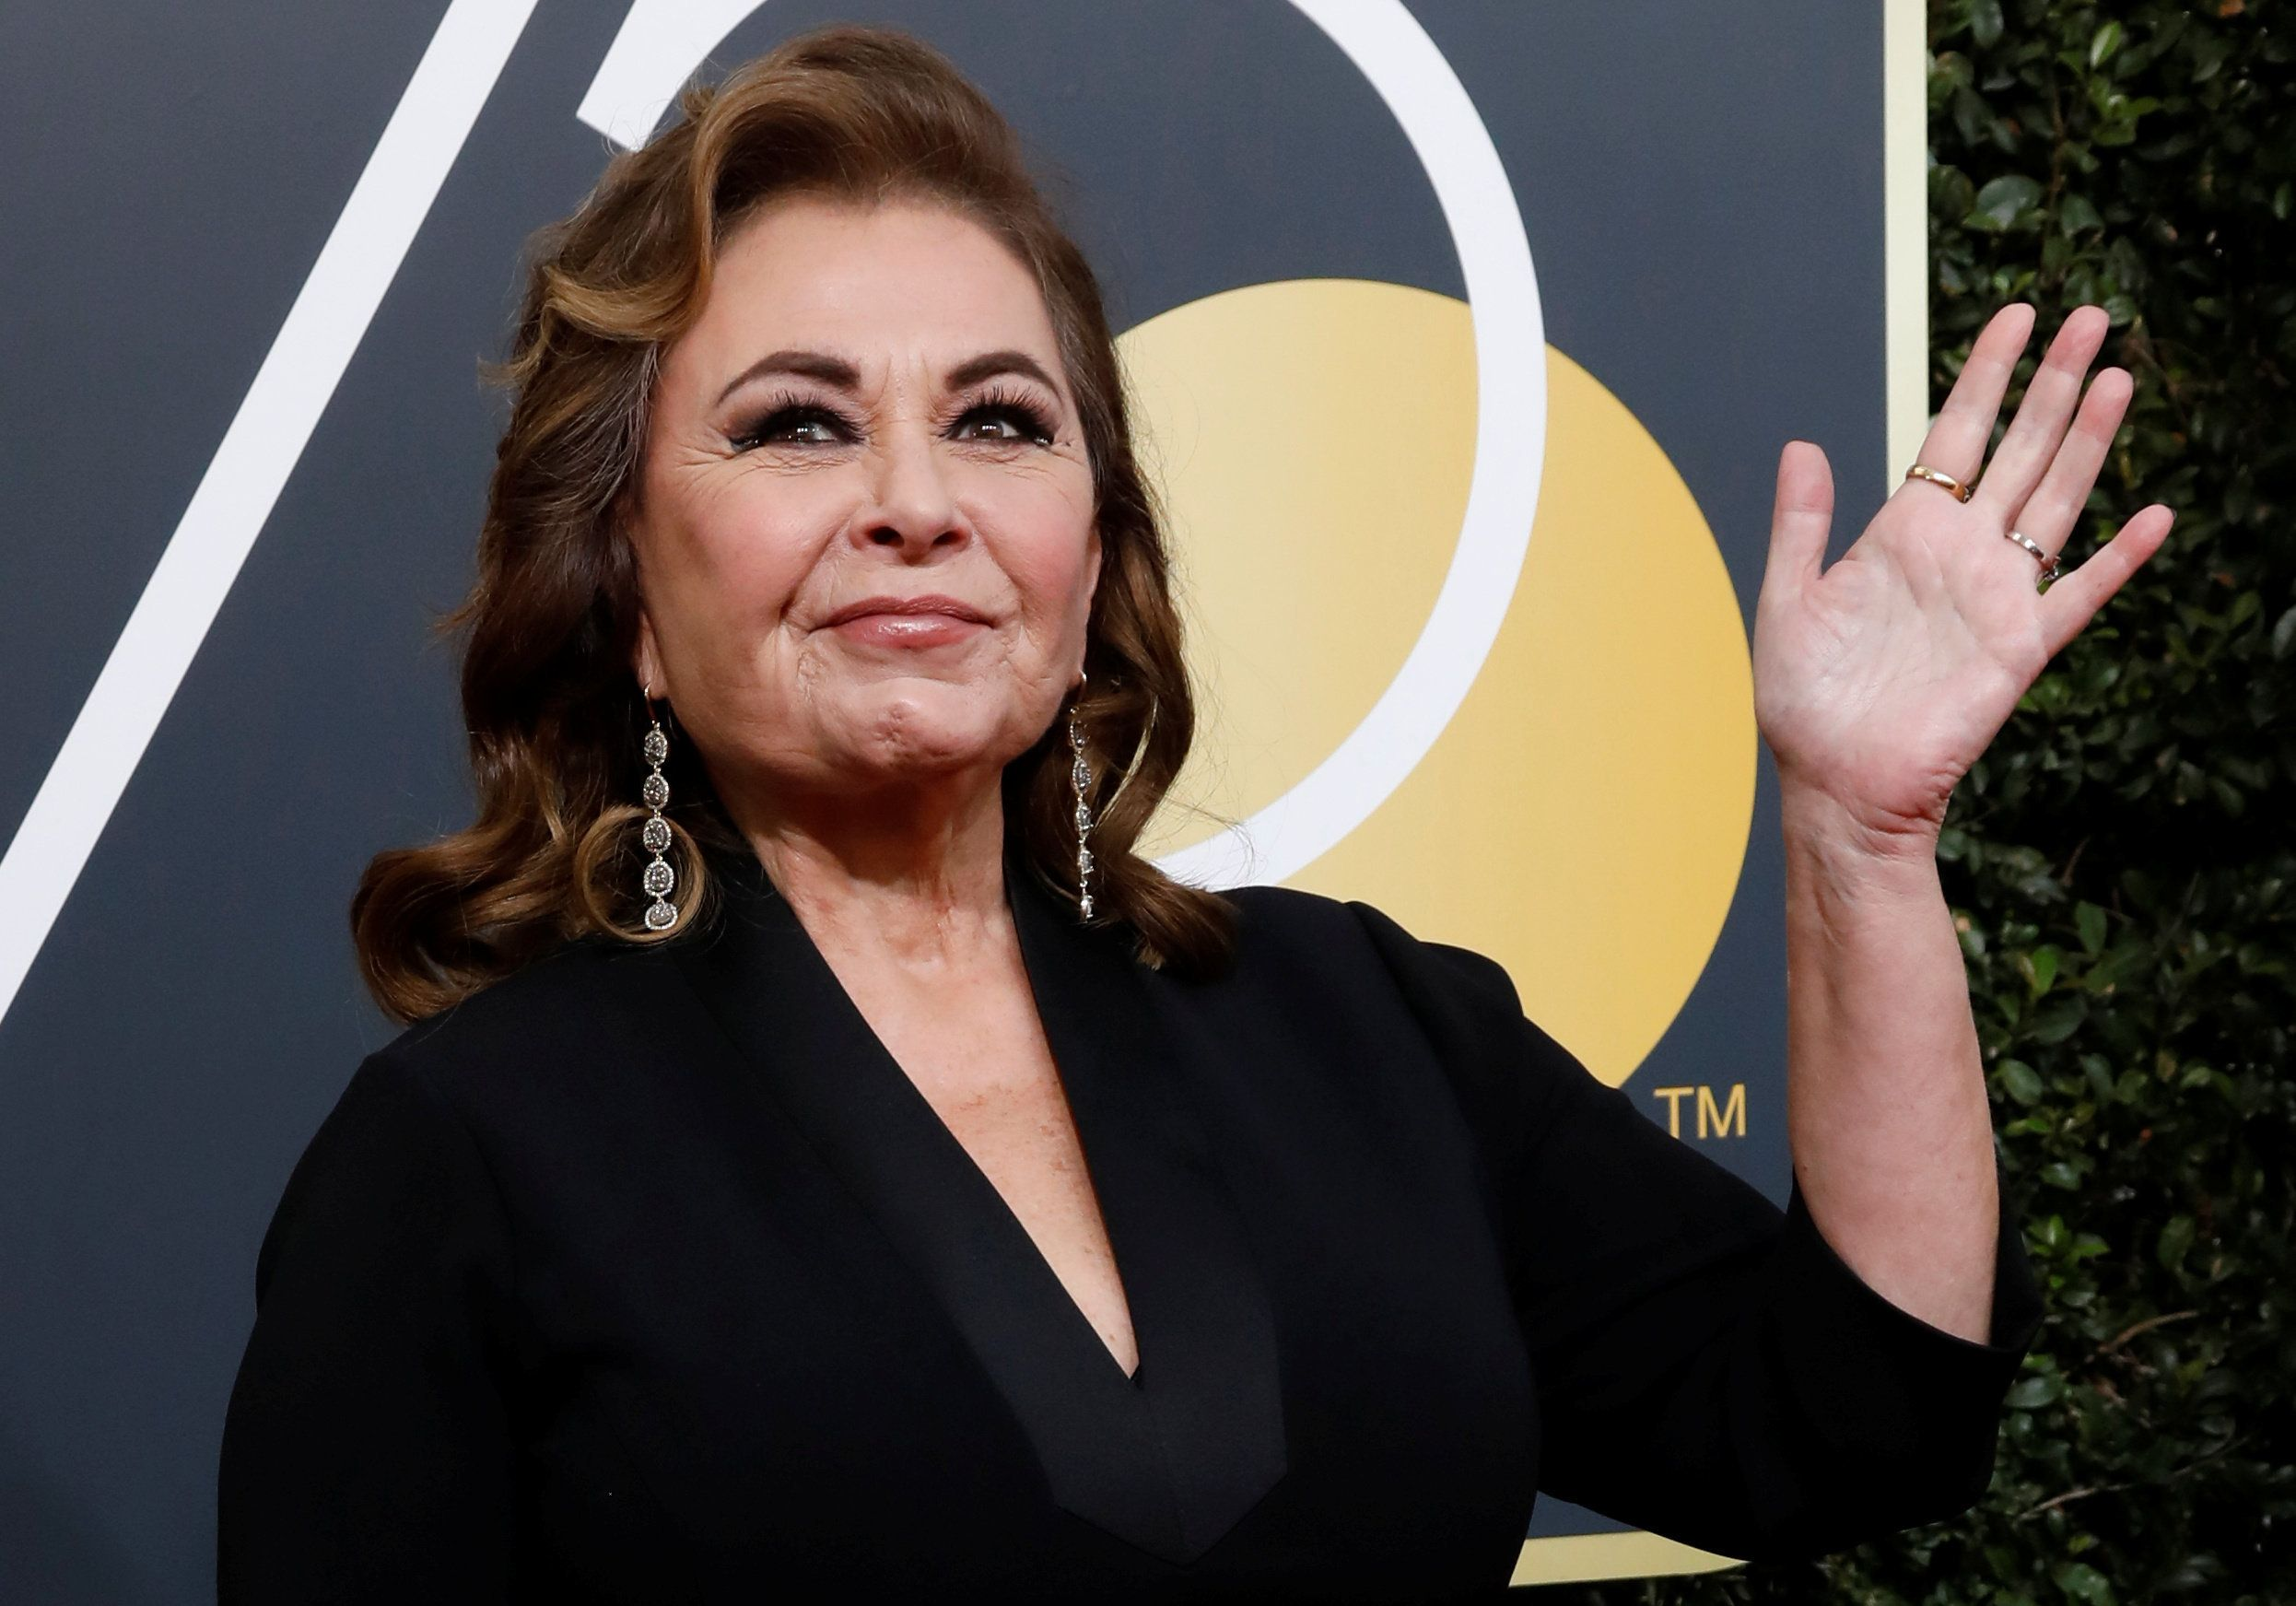 Roseanne Barr claims 'Planet of the Apes' tweet was about anti-Semitism